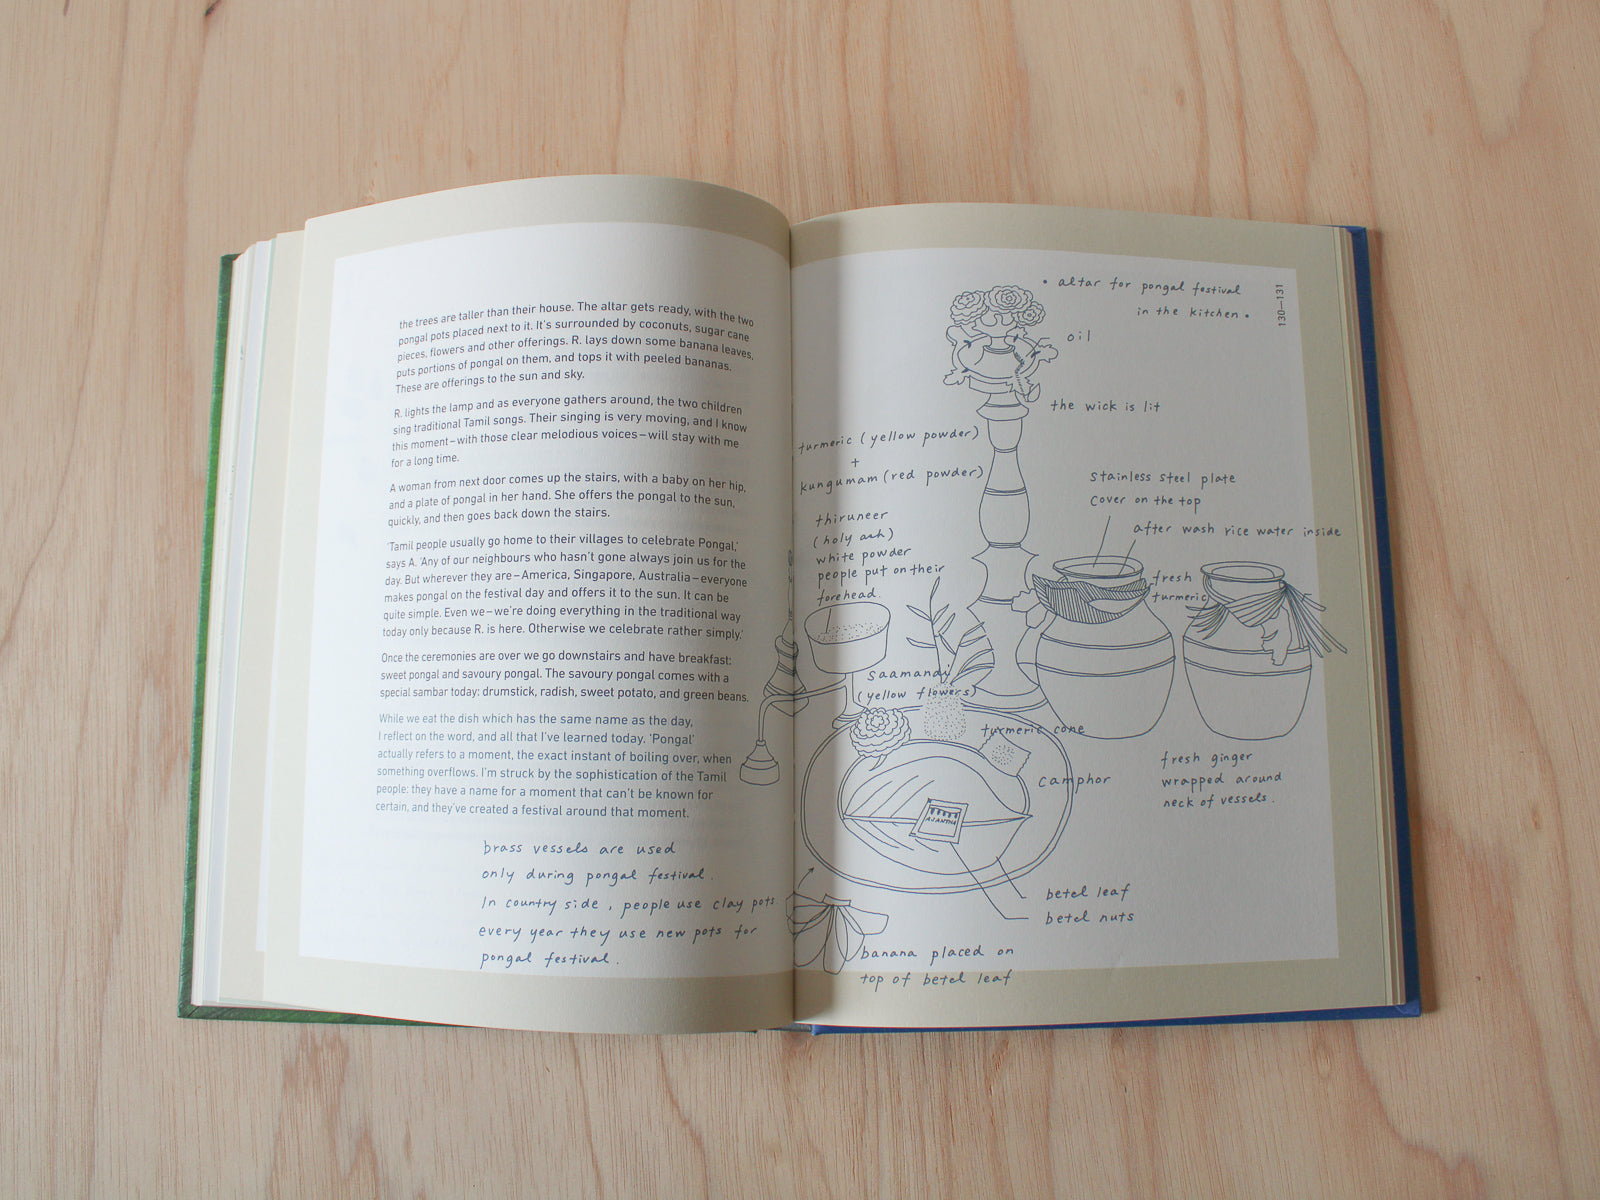 Travels through South Indian Kitchens, Travelogue/ Cookbook